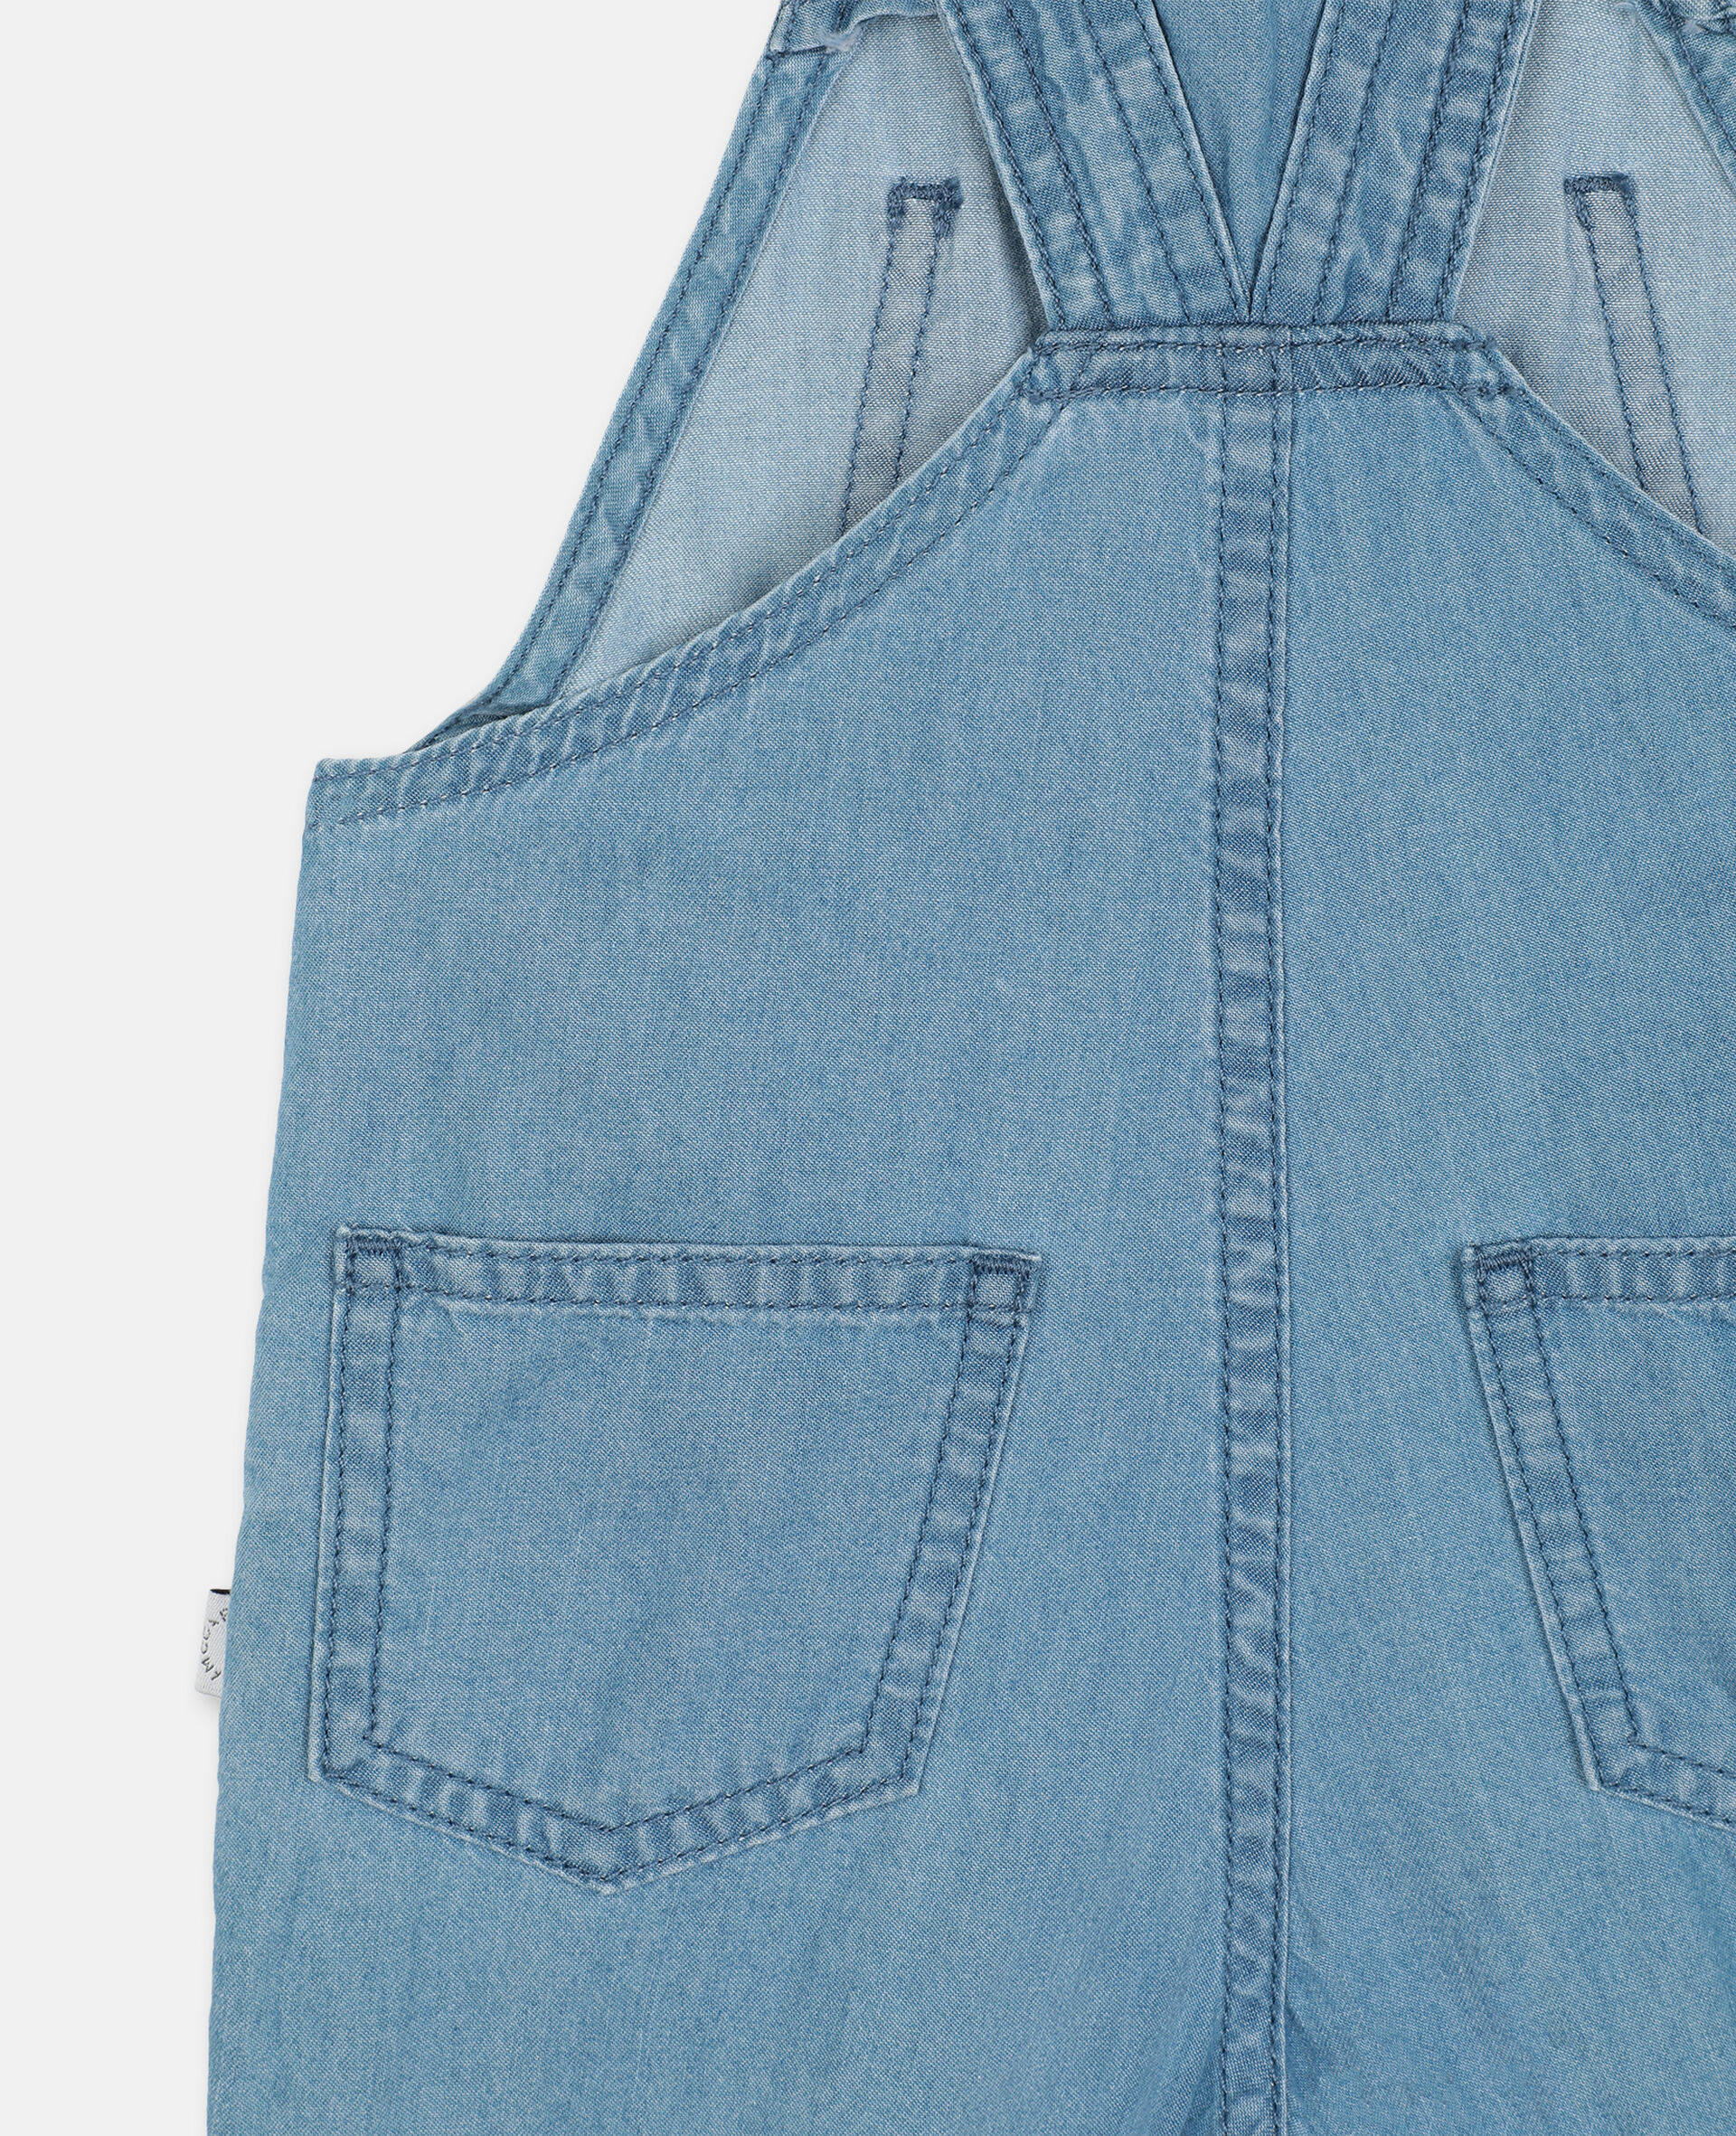 Embroidered Cats Cotton Chambray Dungarees-Blue-large image number 2